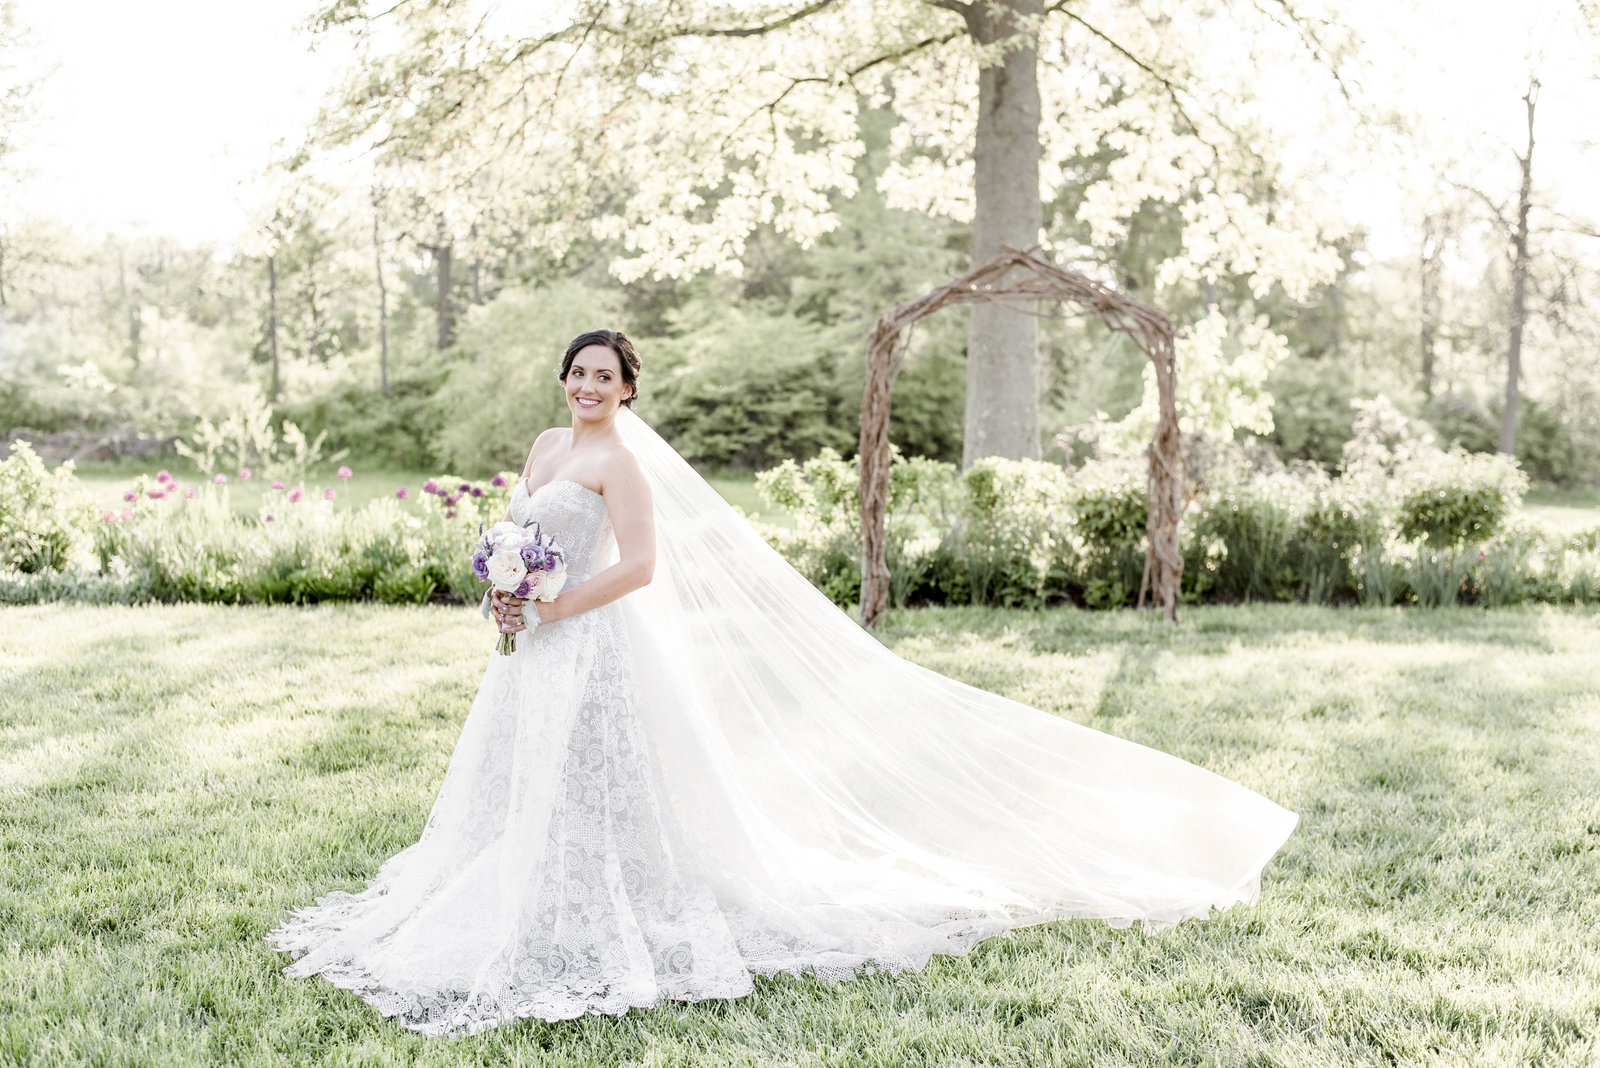 Cassidy_Alane_Photography-Jorgensen_Farm-Ohio_Wedding_Photographer-Lavender_Styled_Shoot-354